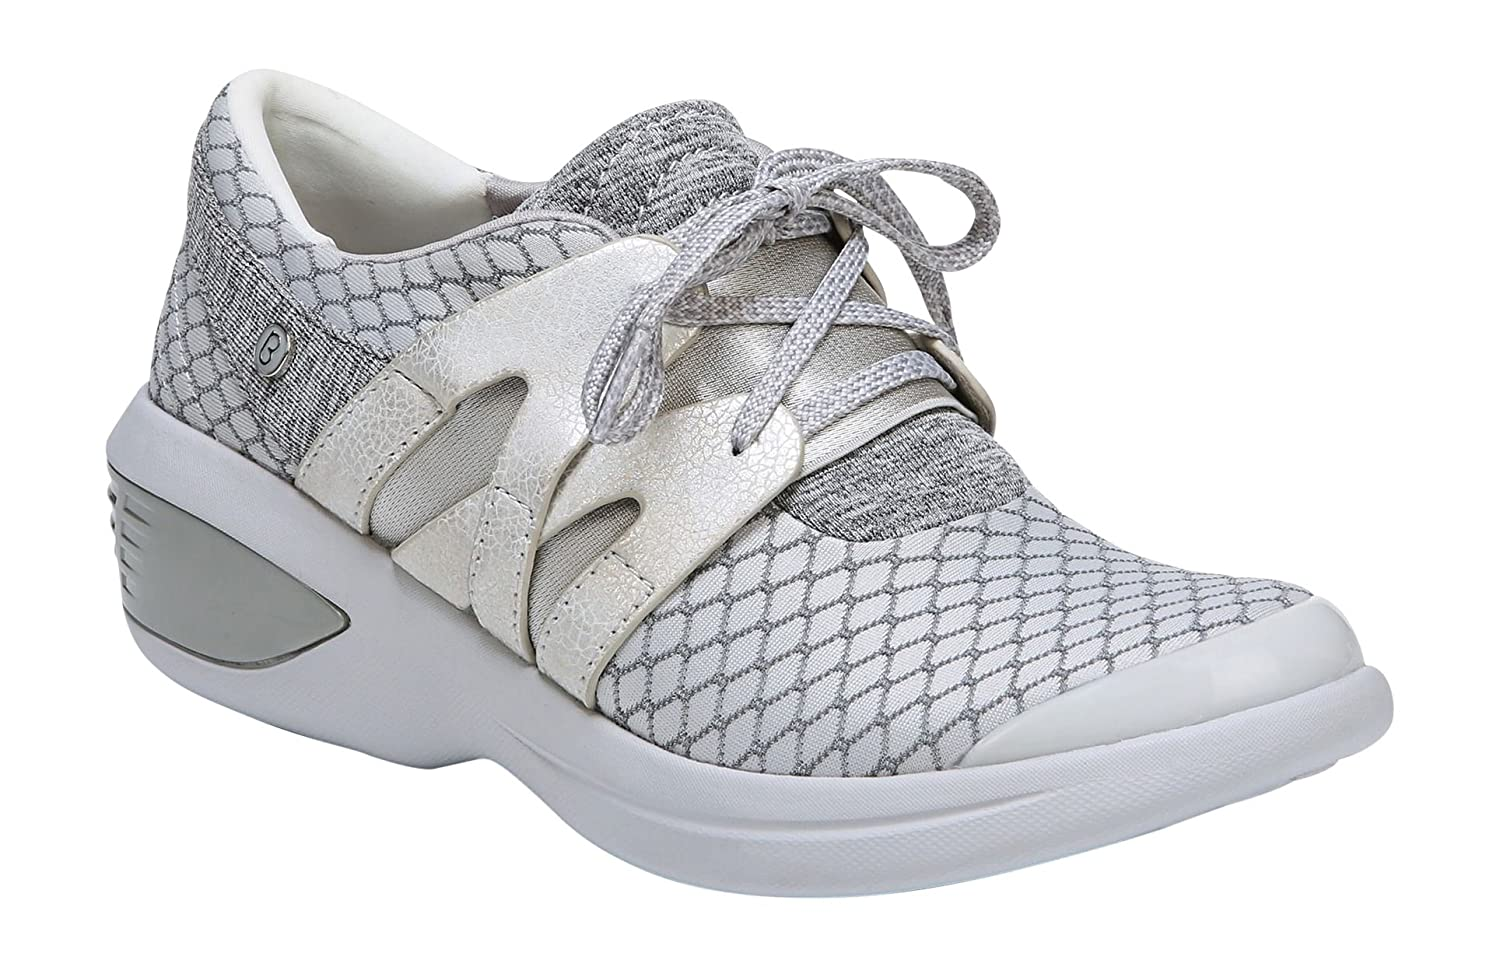 BZees Women's Flicker Sneaker B076C4W45C 9.5 B(M) US|Grey